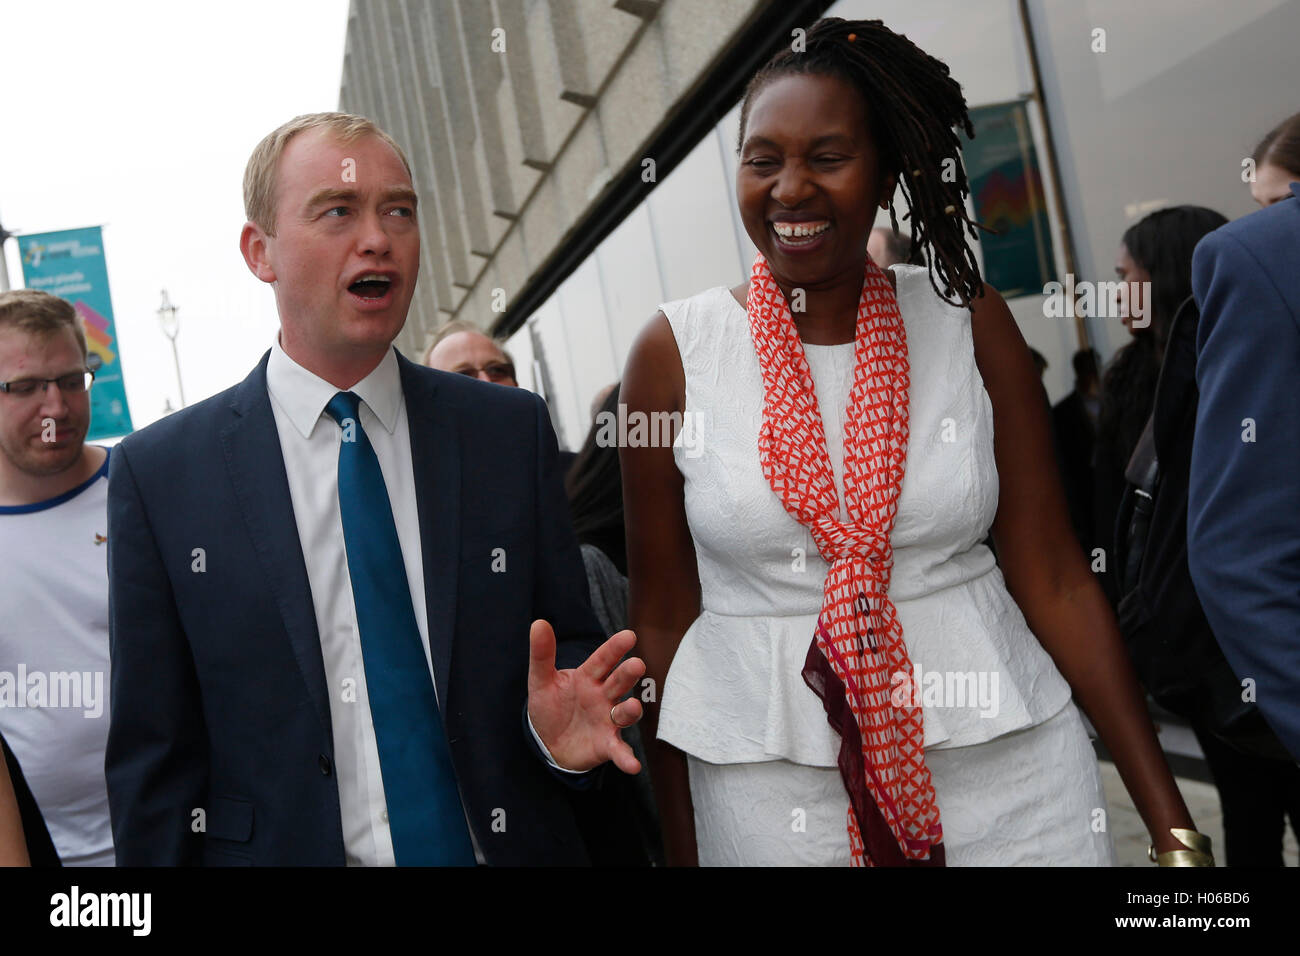 Brighton, UK. 20th Sep, 2016. Tim Farron, Party Leader arrives with party members to give his keynote speech during - Stock Image